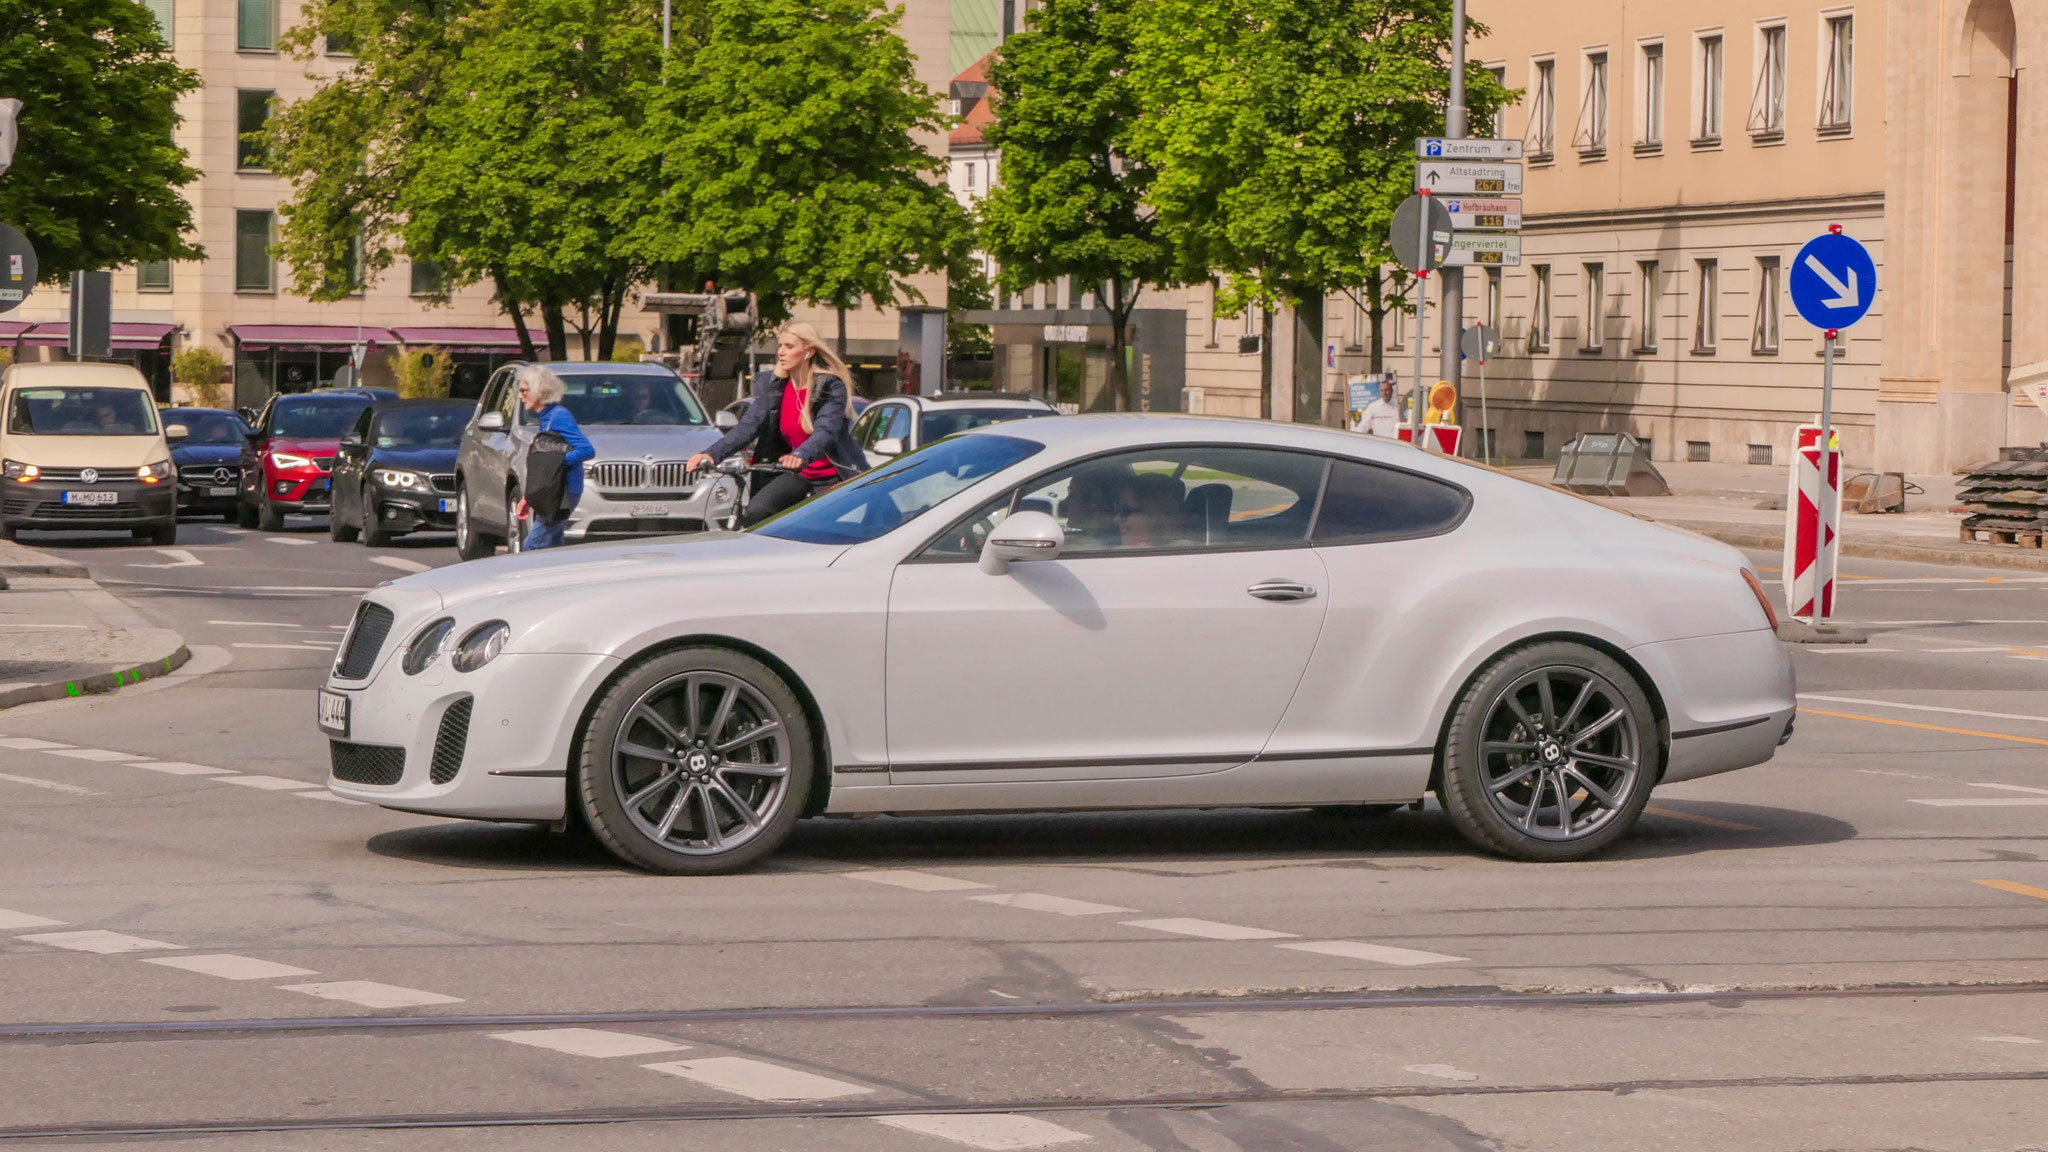 Bentley Continental GT Supersports - GS-KL-444